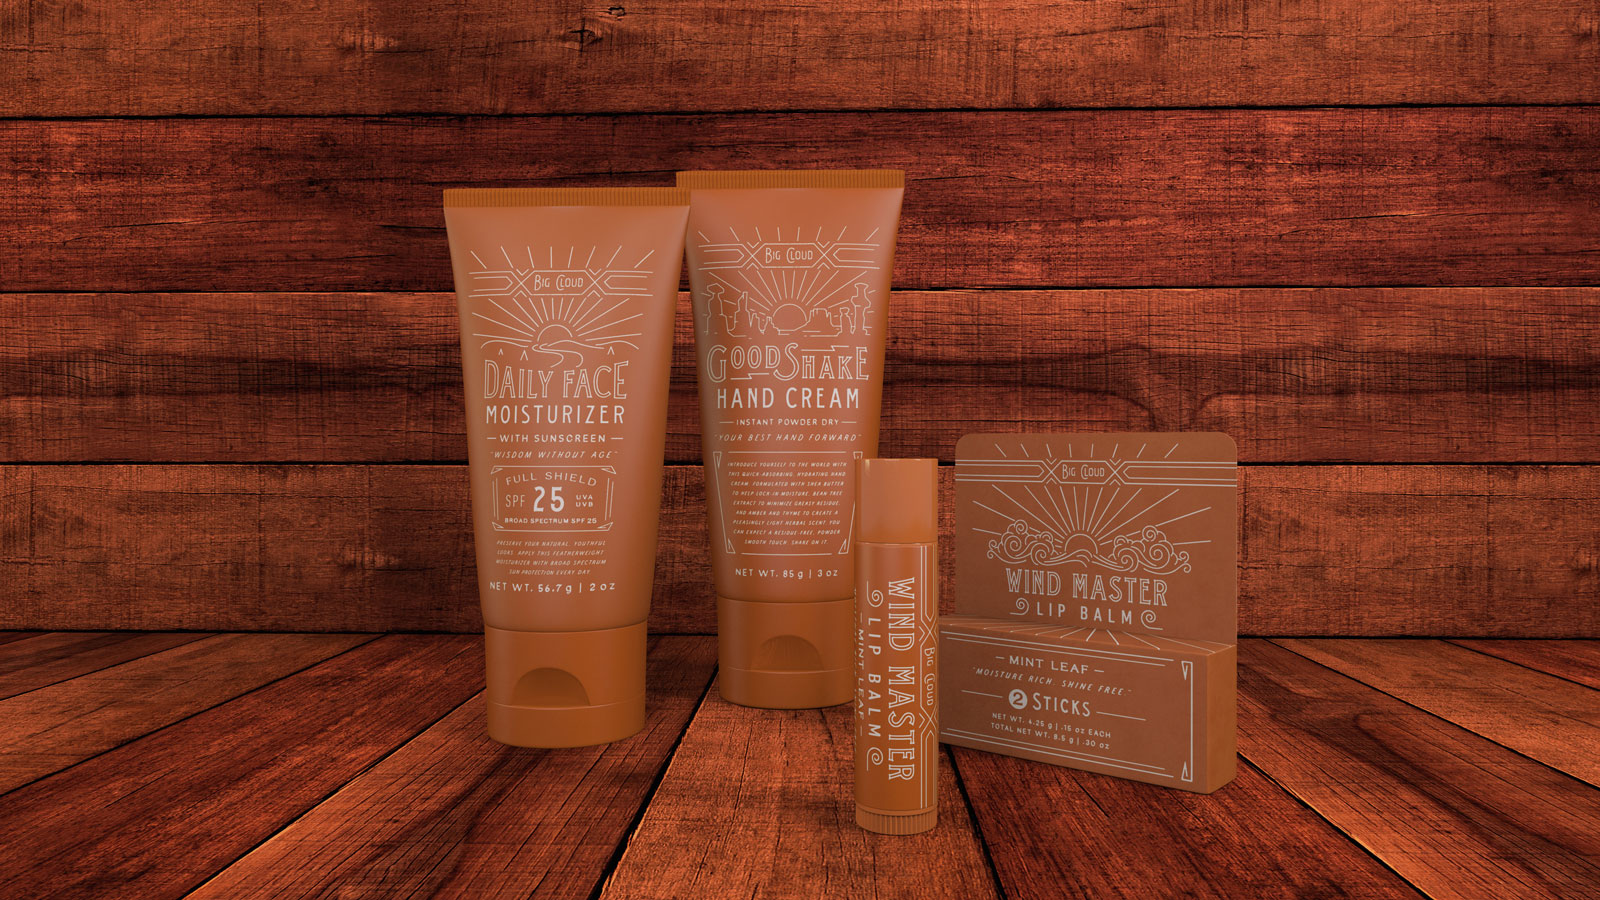 Big Cloud Press Material, for Dollar Shave Club